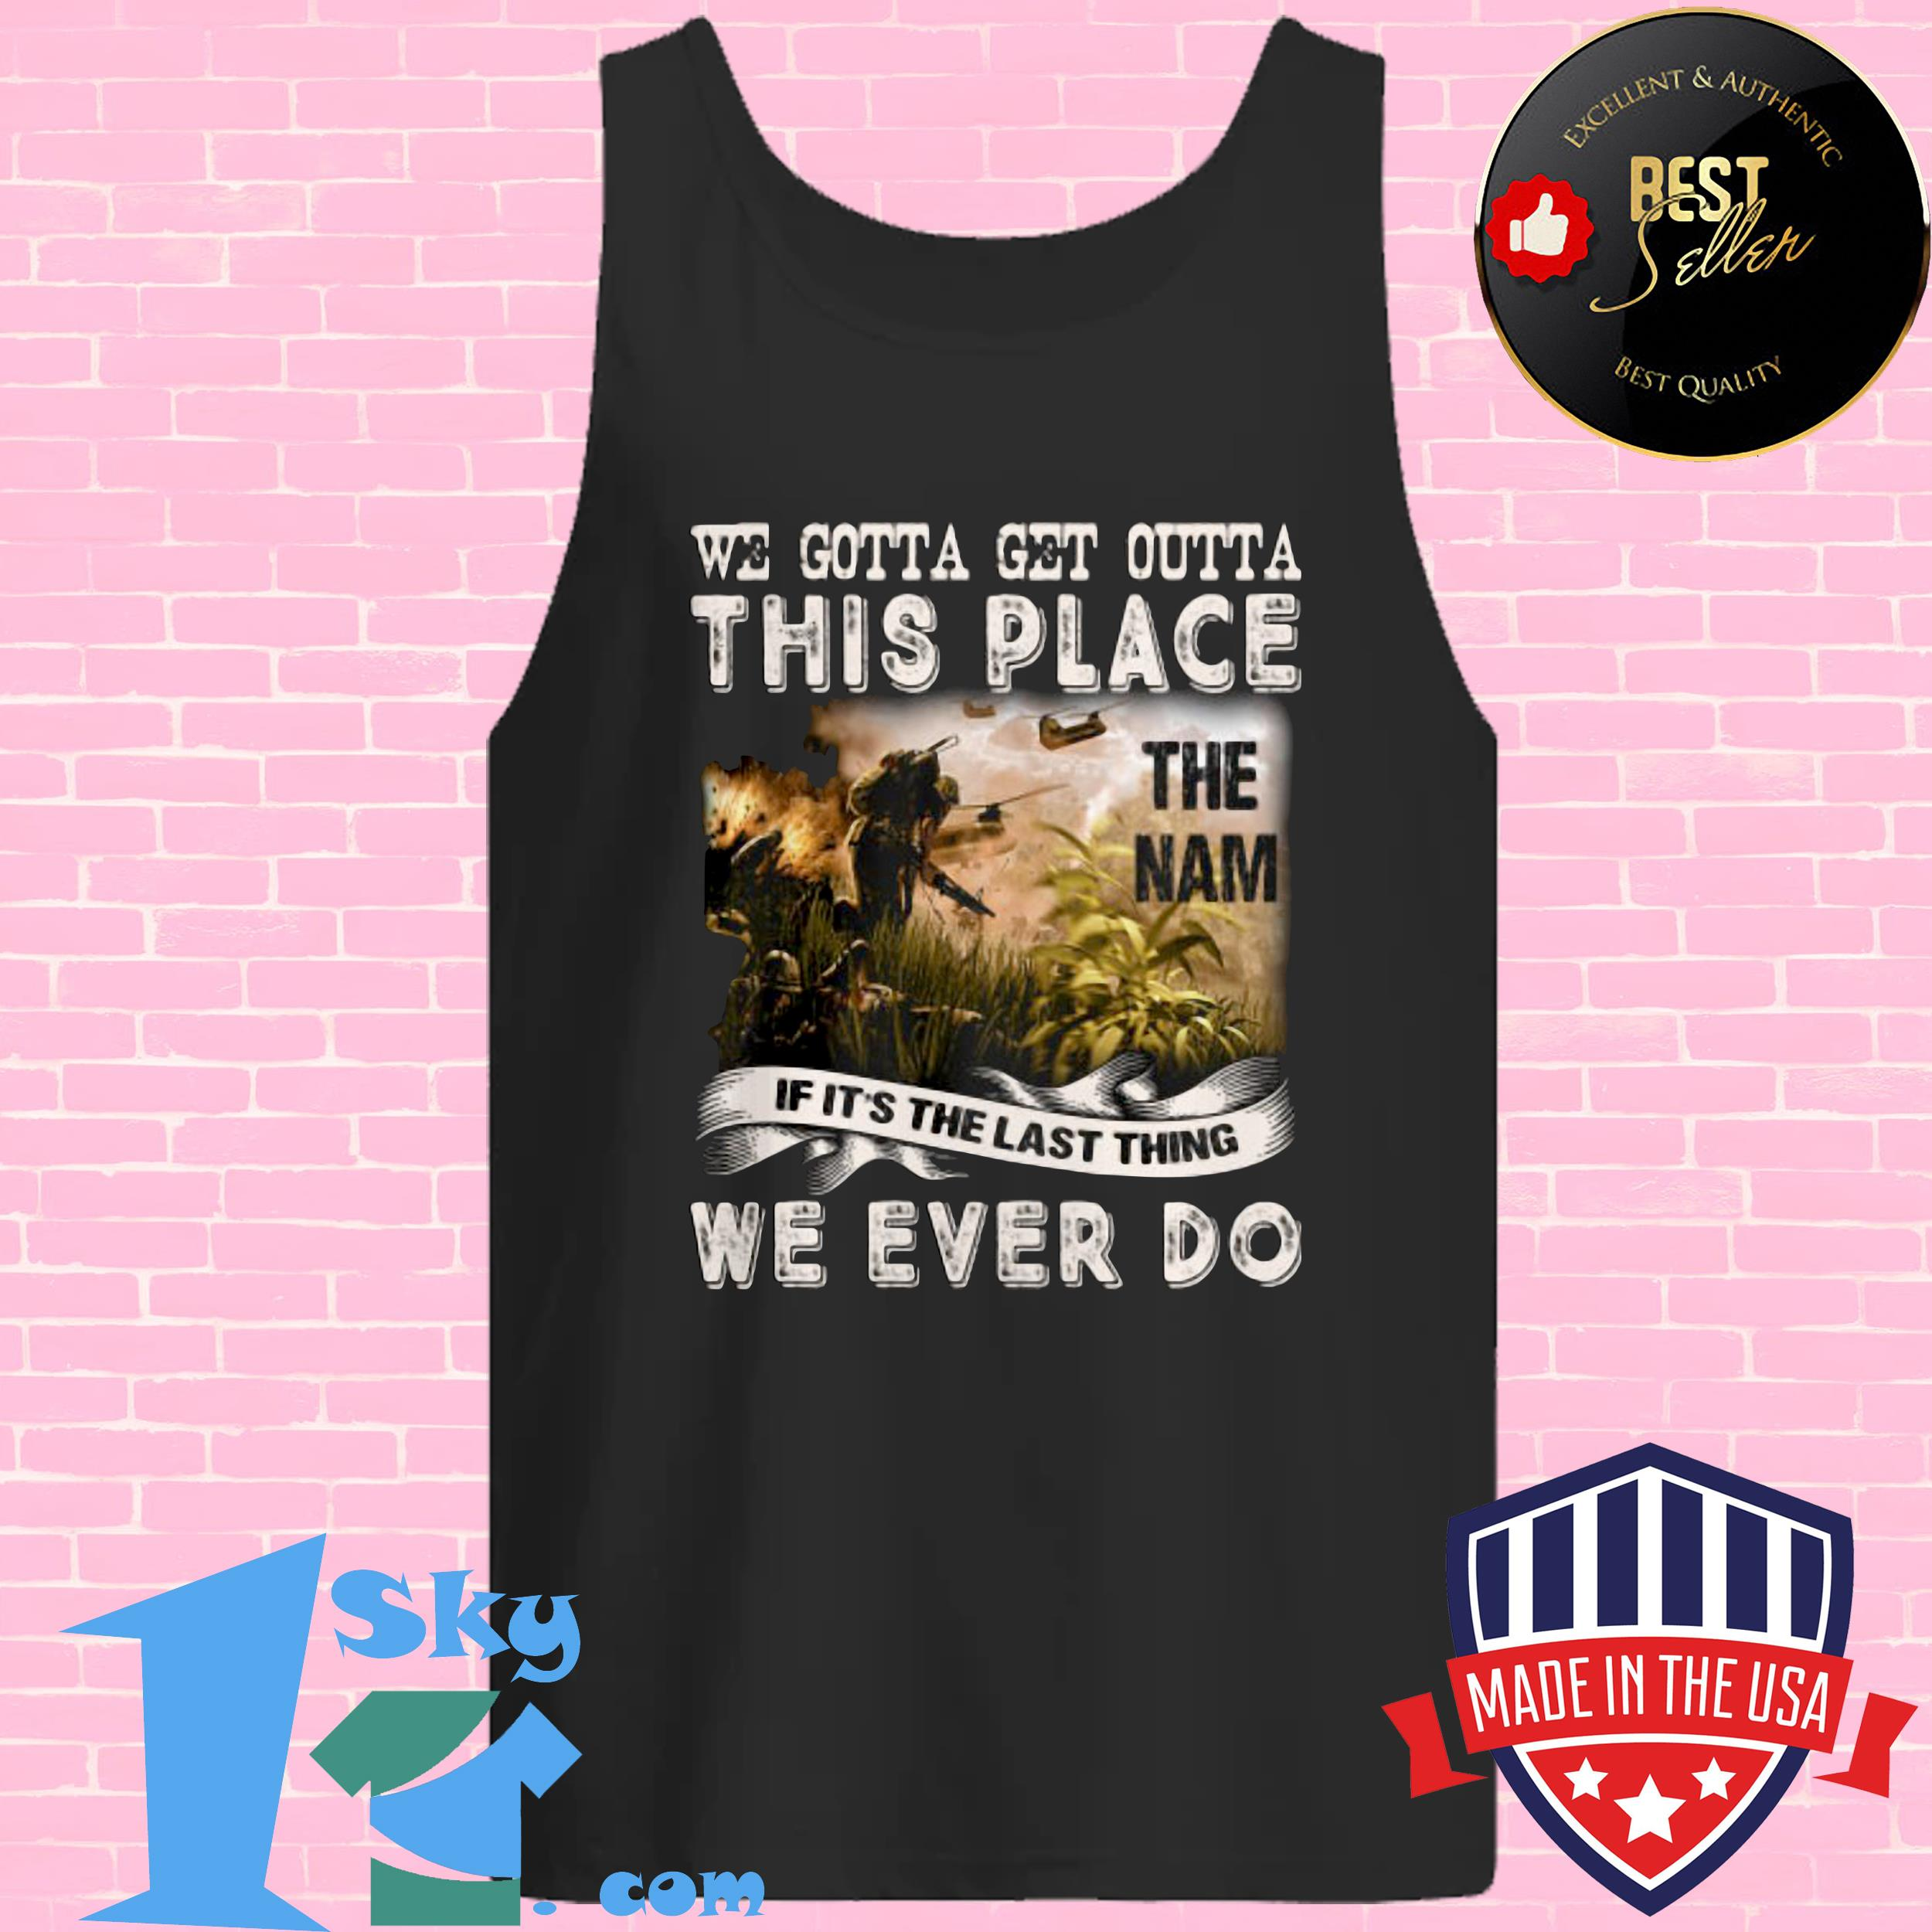 we gotta get outta this place the name we ever do veteran tank top - We Gotta Get Outta This Place The Name We Ever Do Veteran shirt